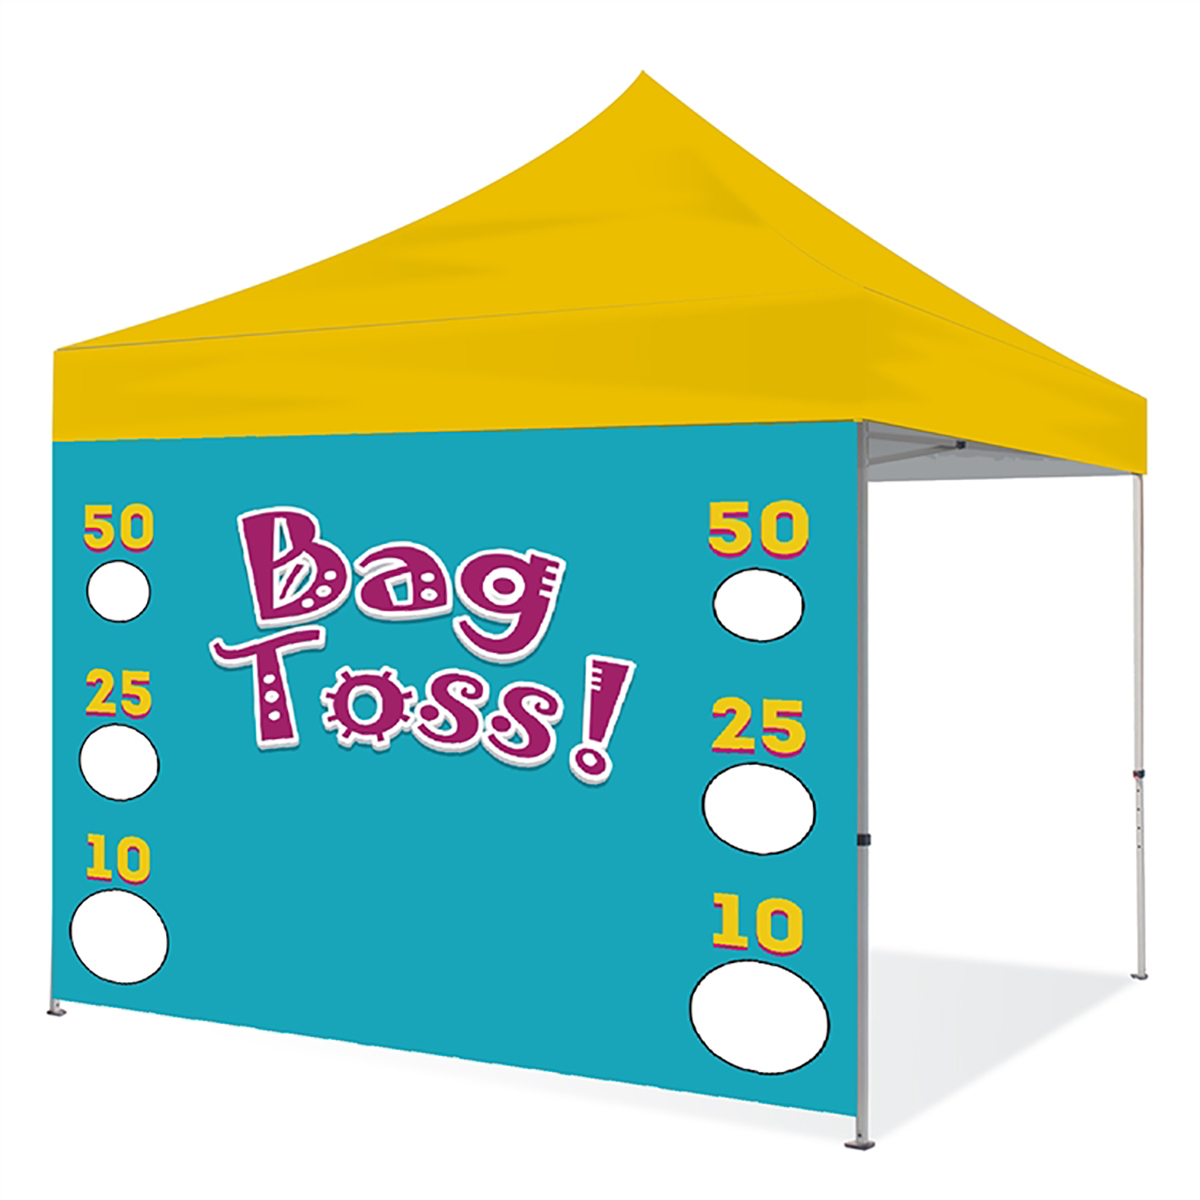 10ft Pop Up Canopy Wall - Game